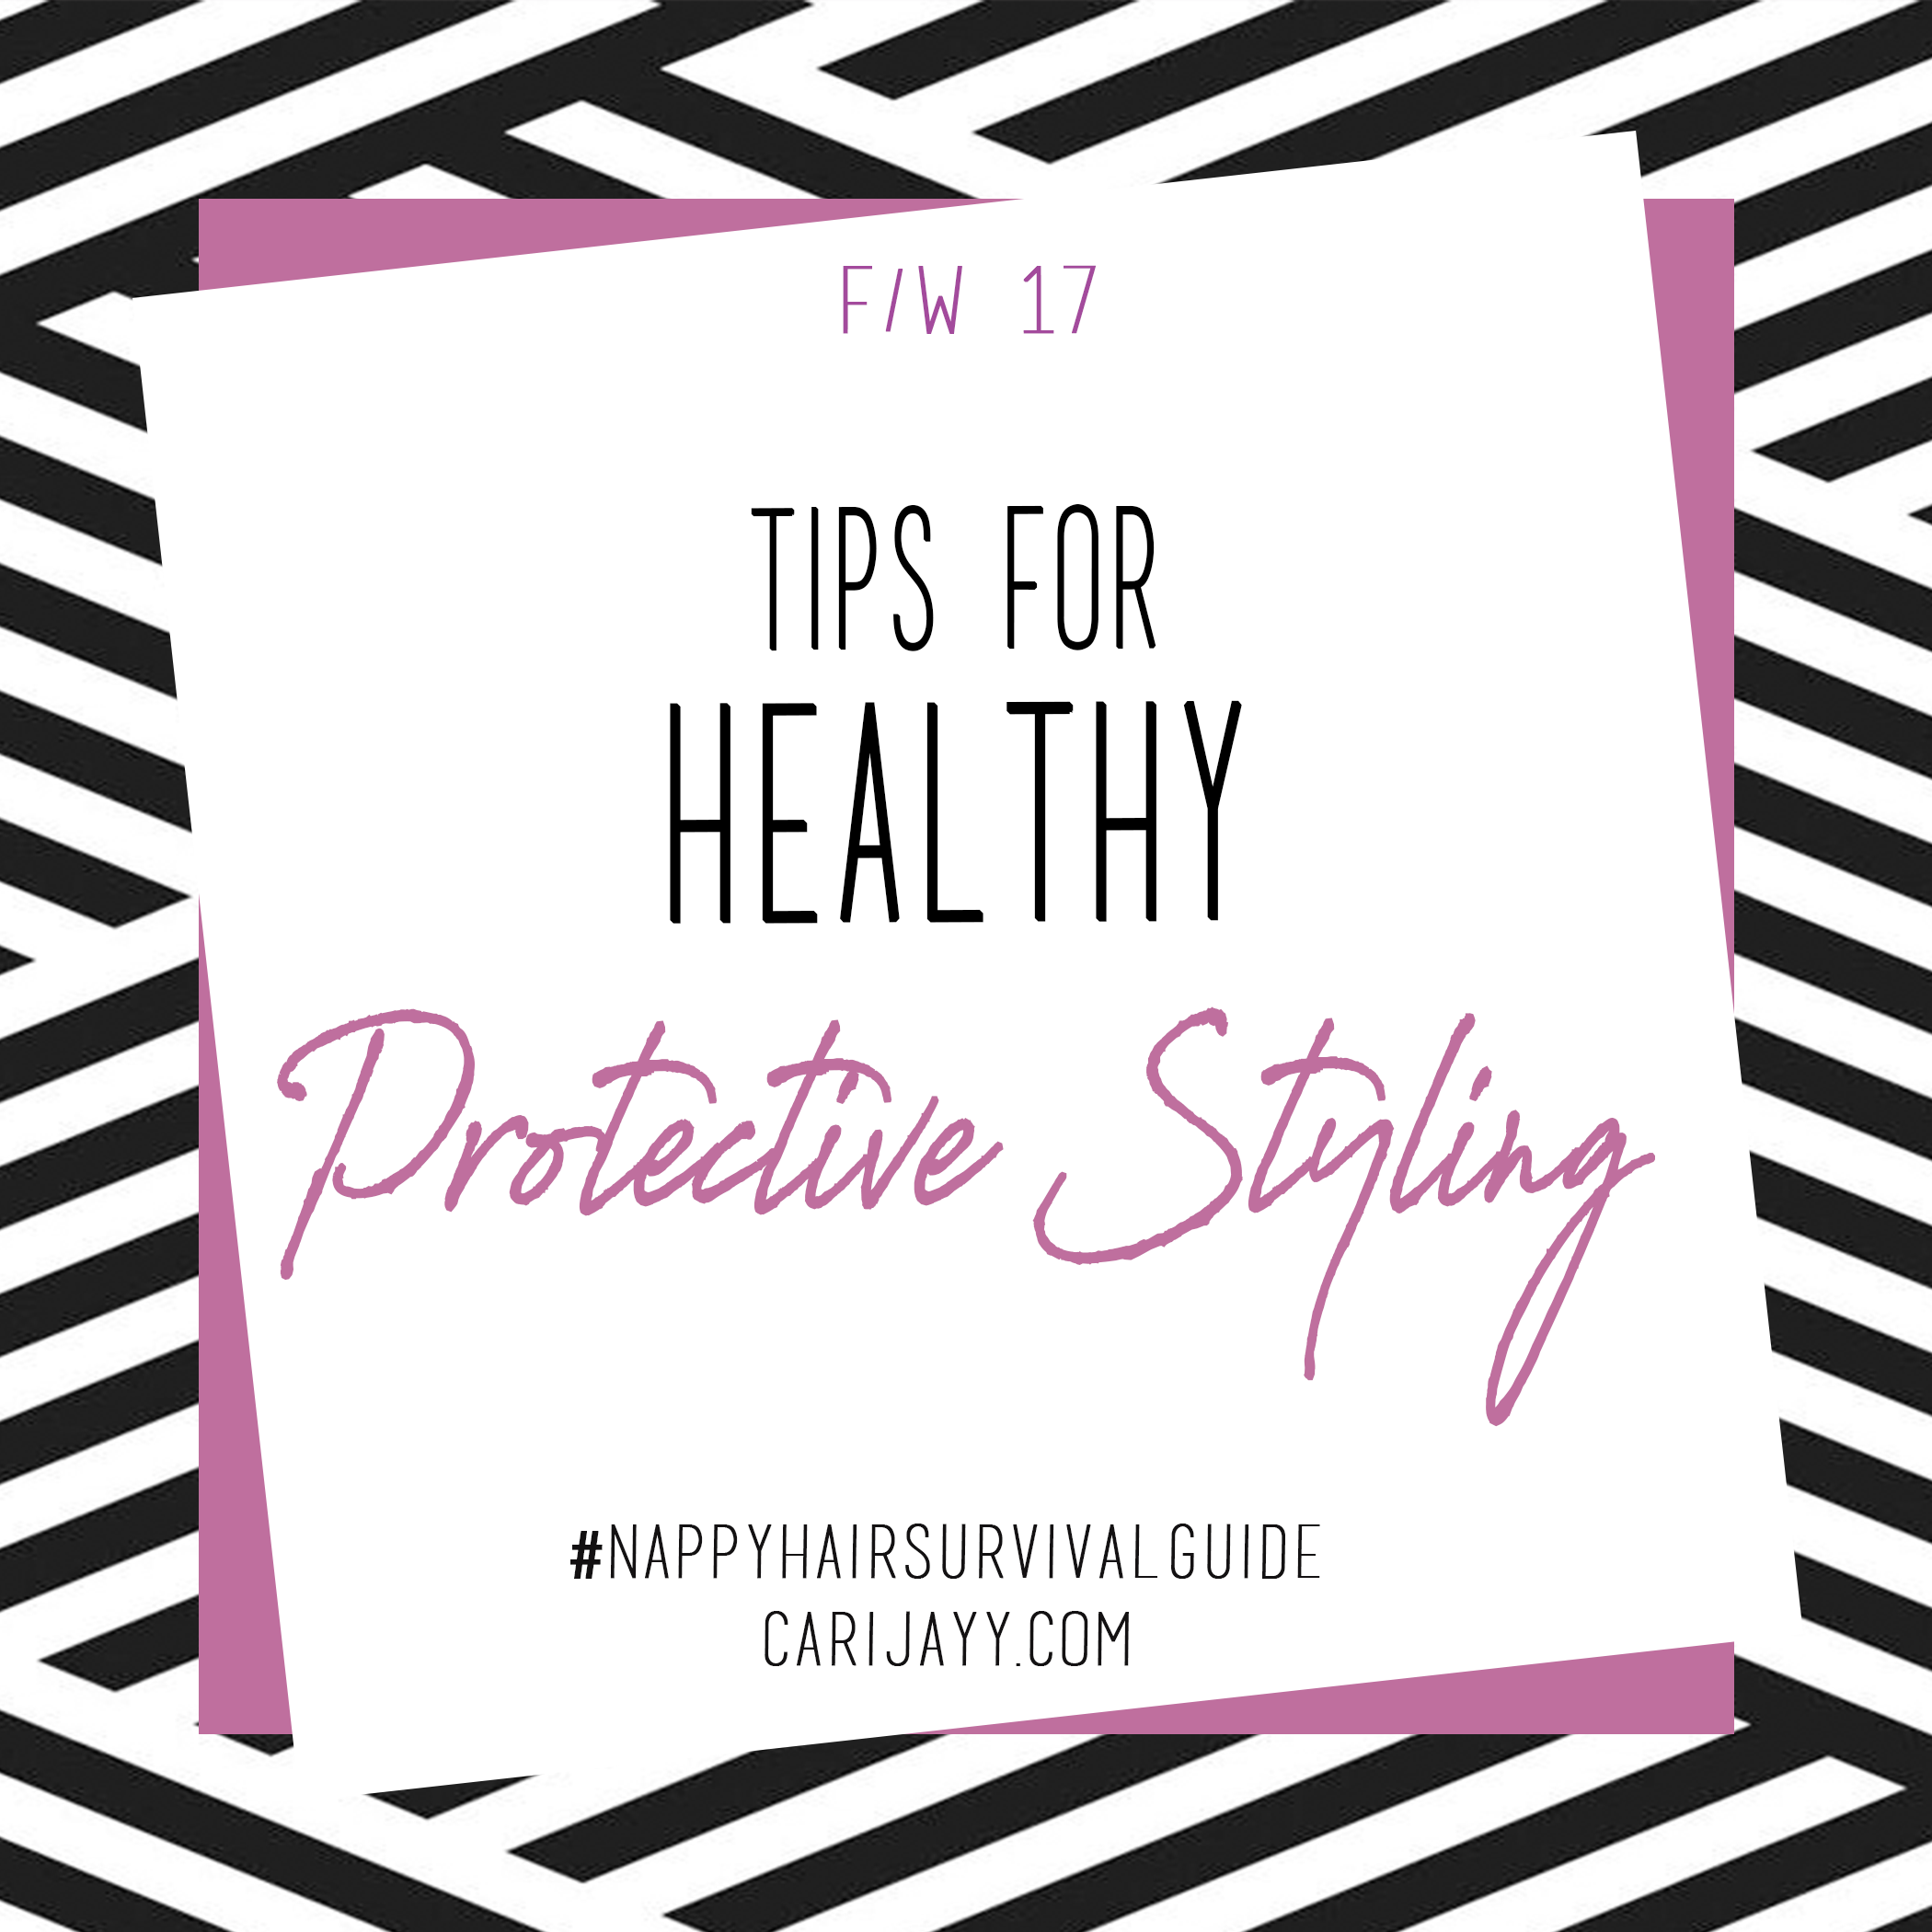 Tips-For-Protective-Styling-Final.png